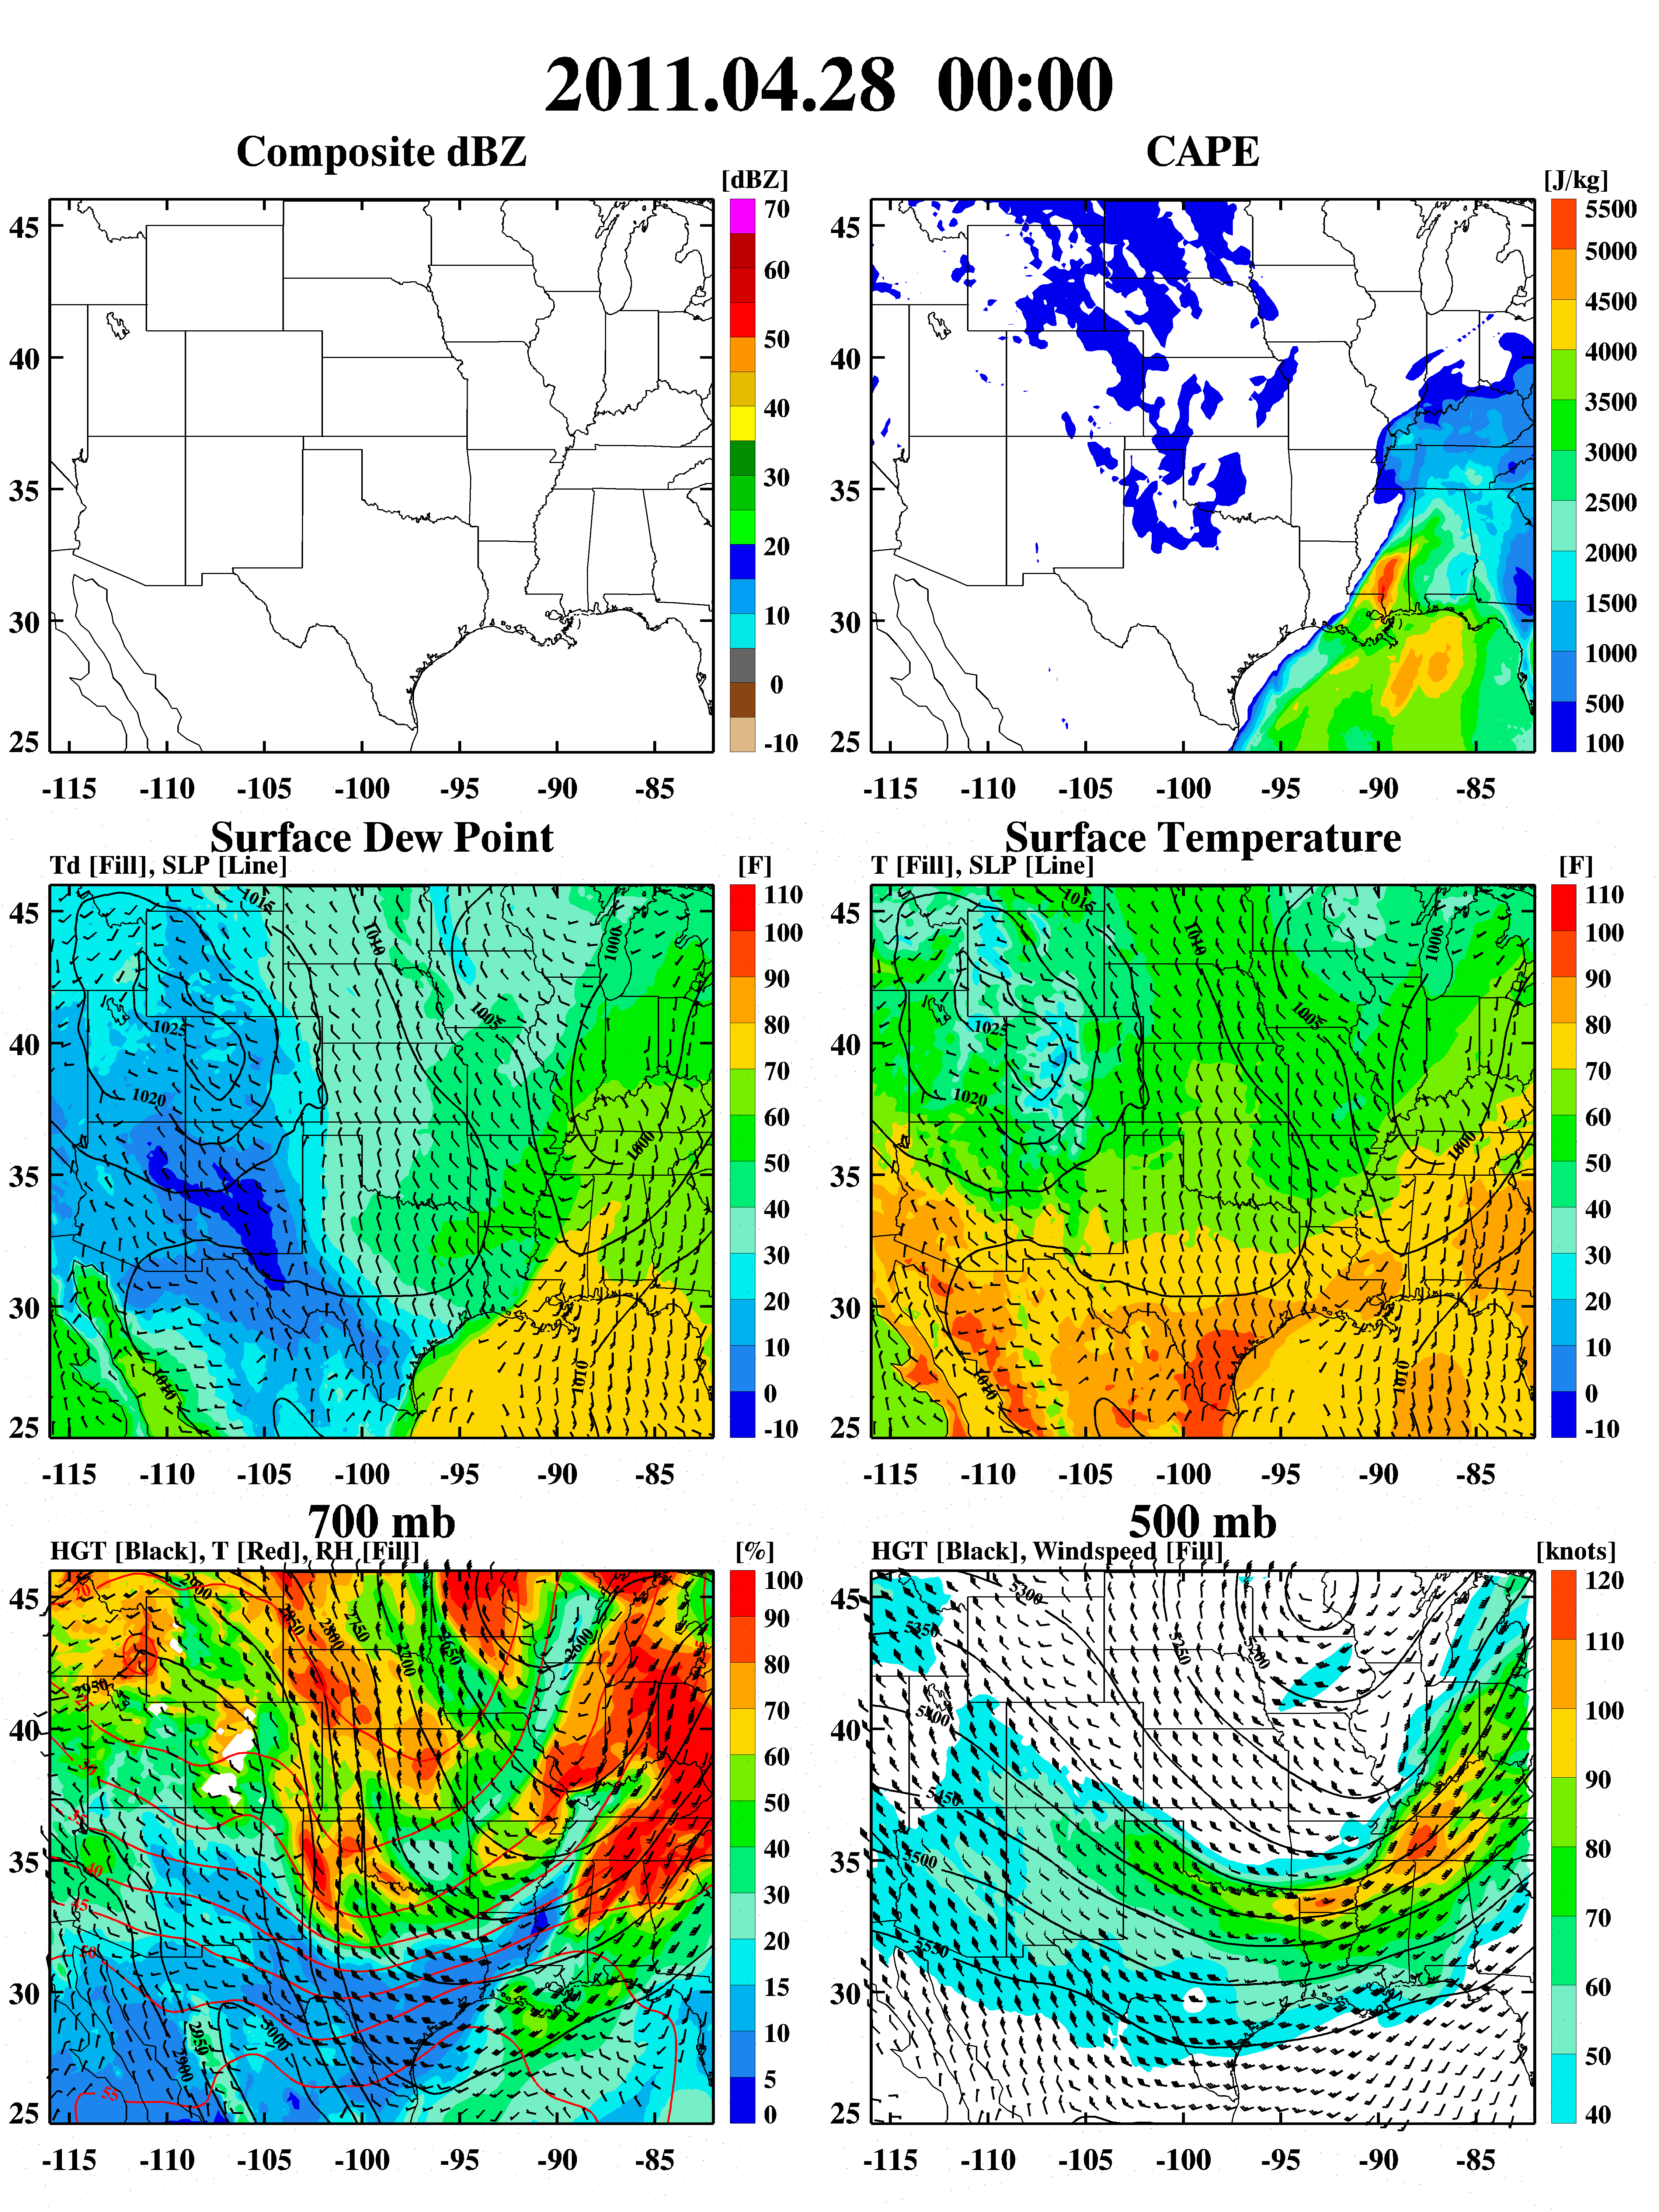 GPM Ground Validation Weather Research and Forecasting (WRF) Images